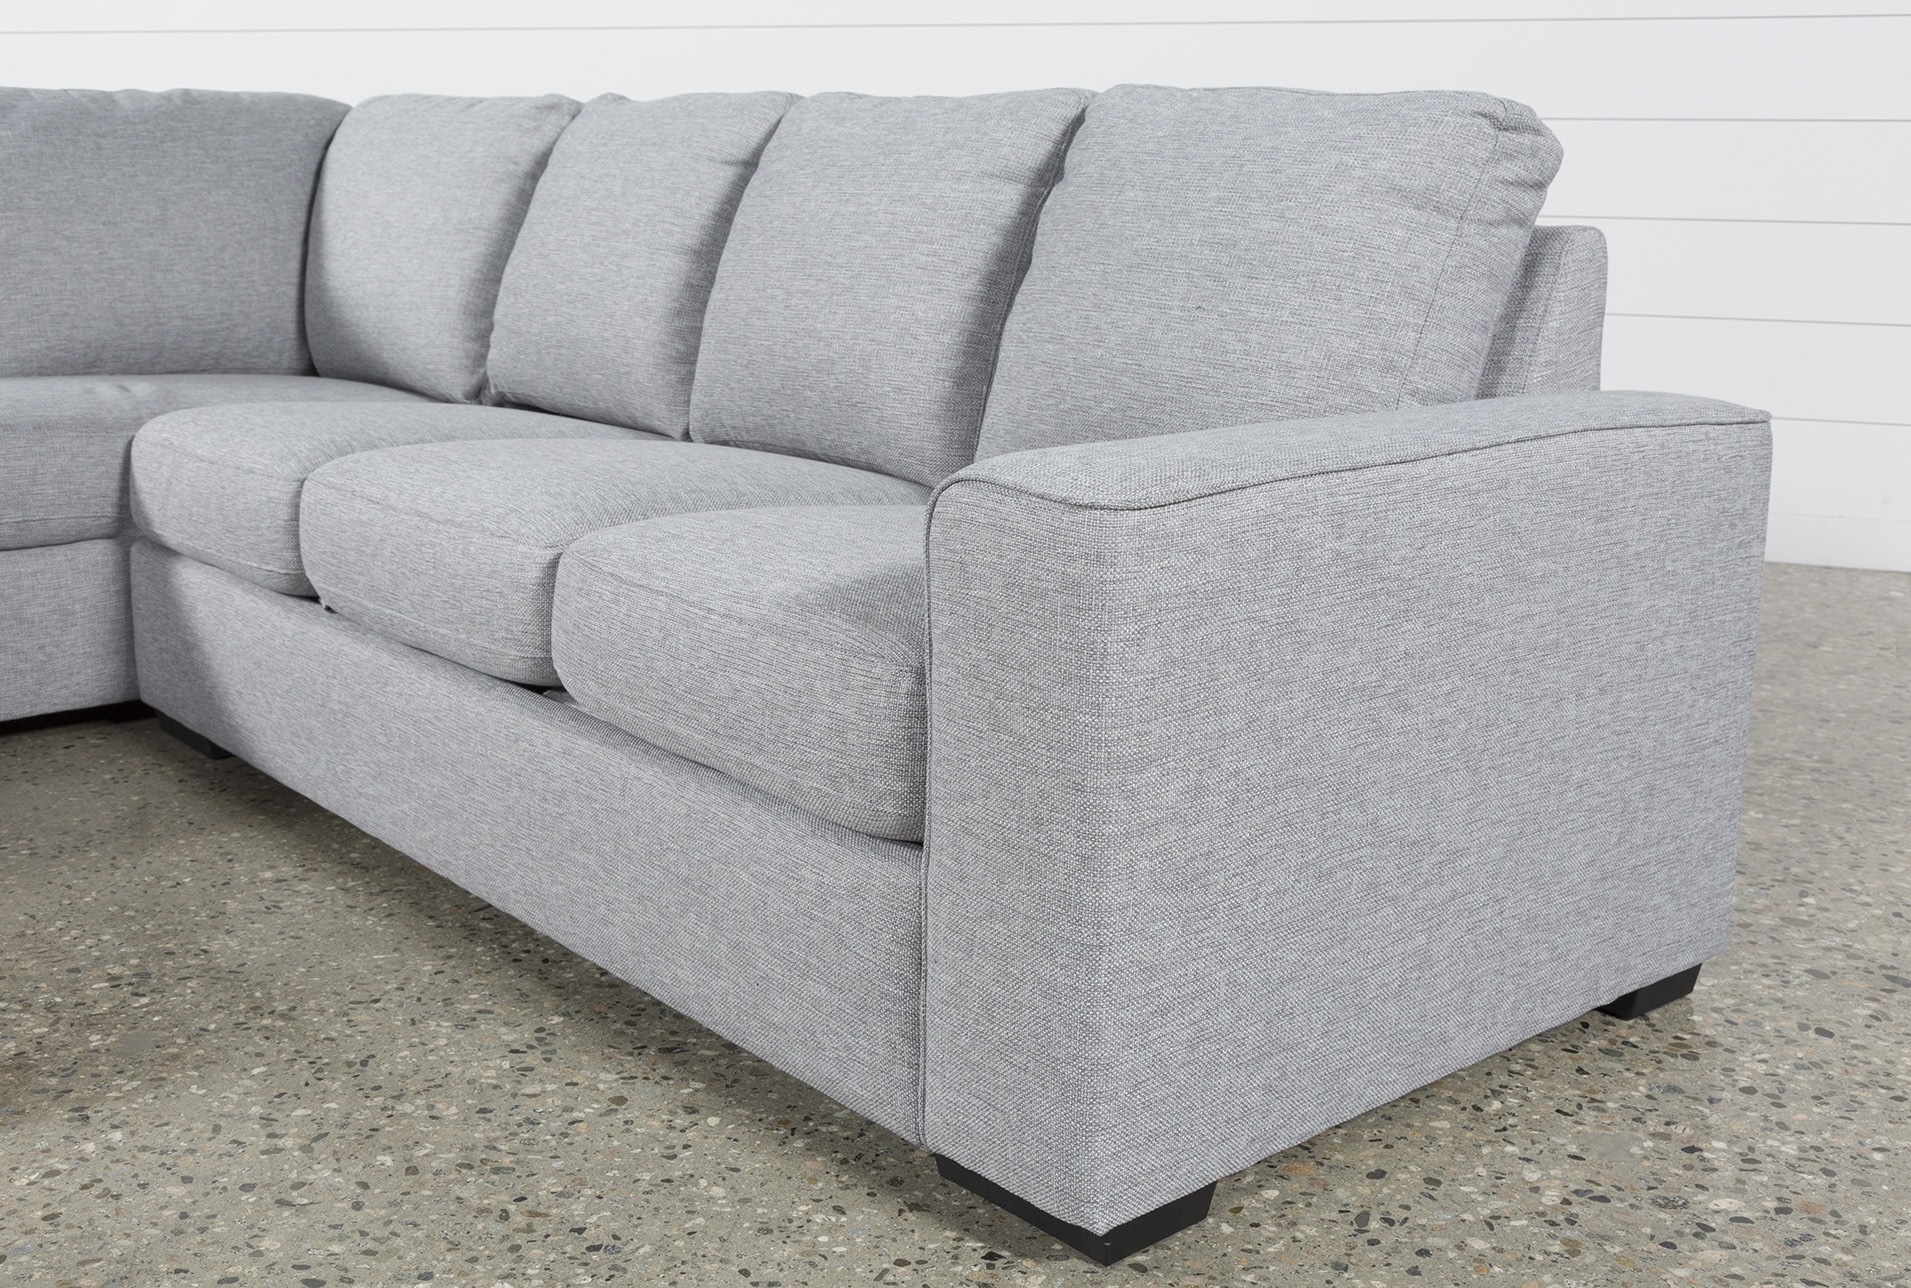 Lucy Grey 2 Piece Sectional W/laf Chaise | Products within Lucy Dark Grey 2 Piece Sleeper Sectionals With Raf Chaise (Image 18 of 30)